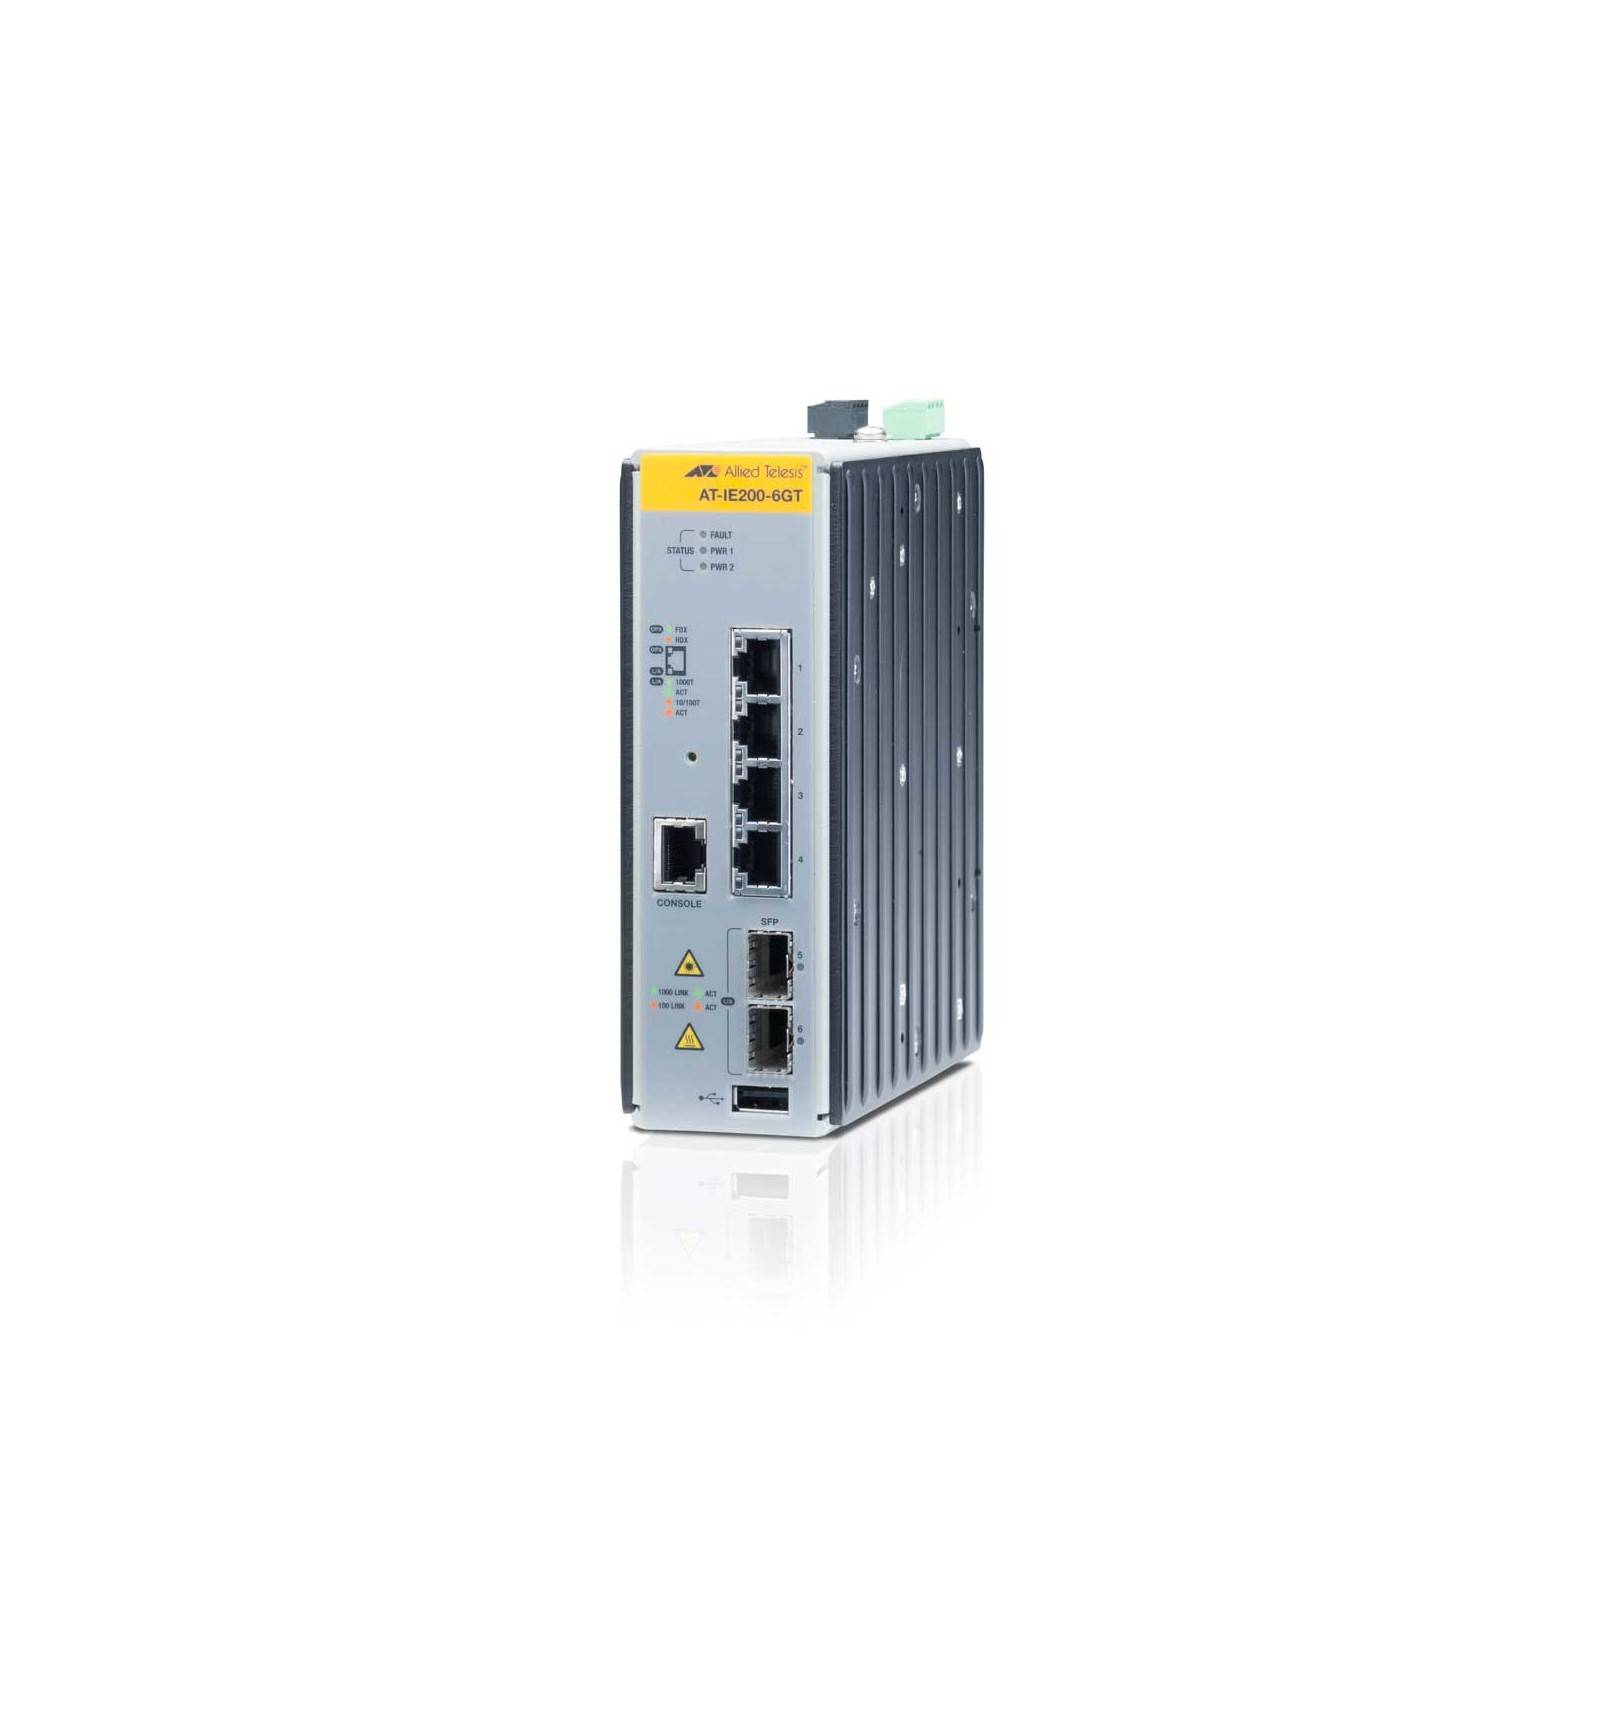 Allied Telesis AT-IE200-6GT Managed network switch L2 Gigabit Ethernet (10/100/1000) Musta